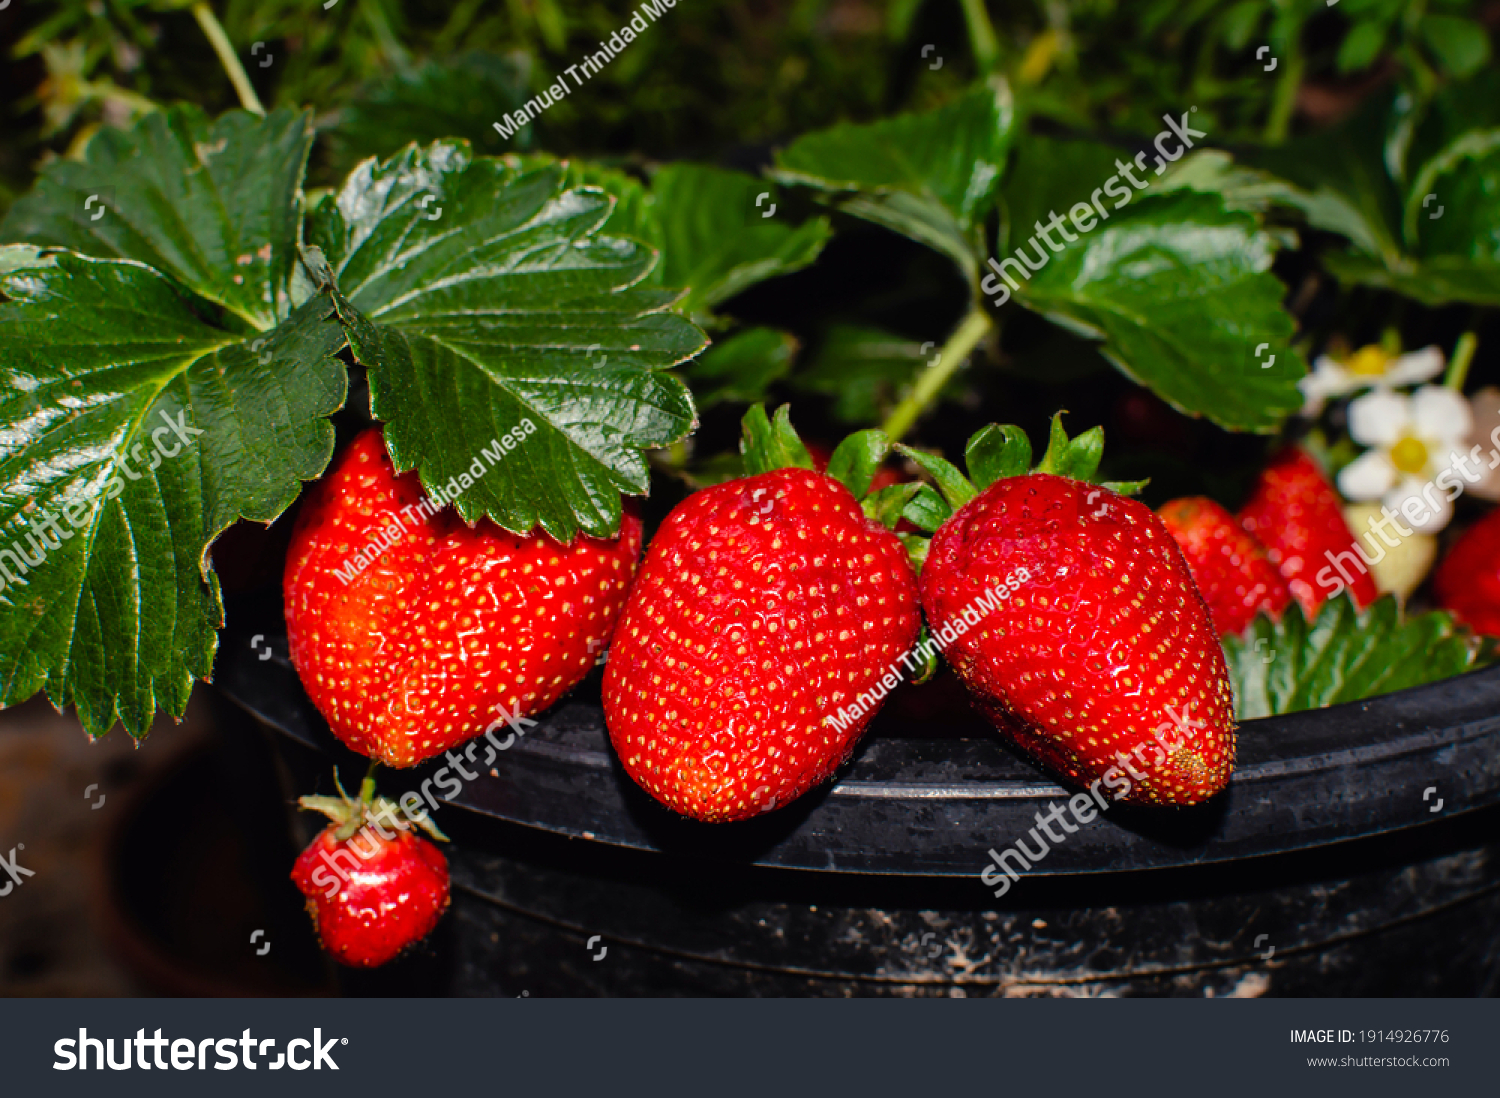 Strawberry plant in a pot, with ripe fruit